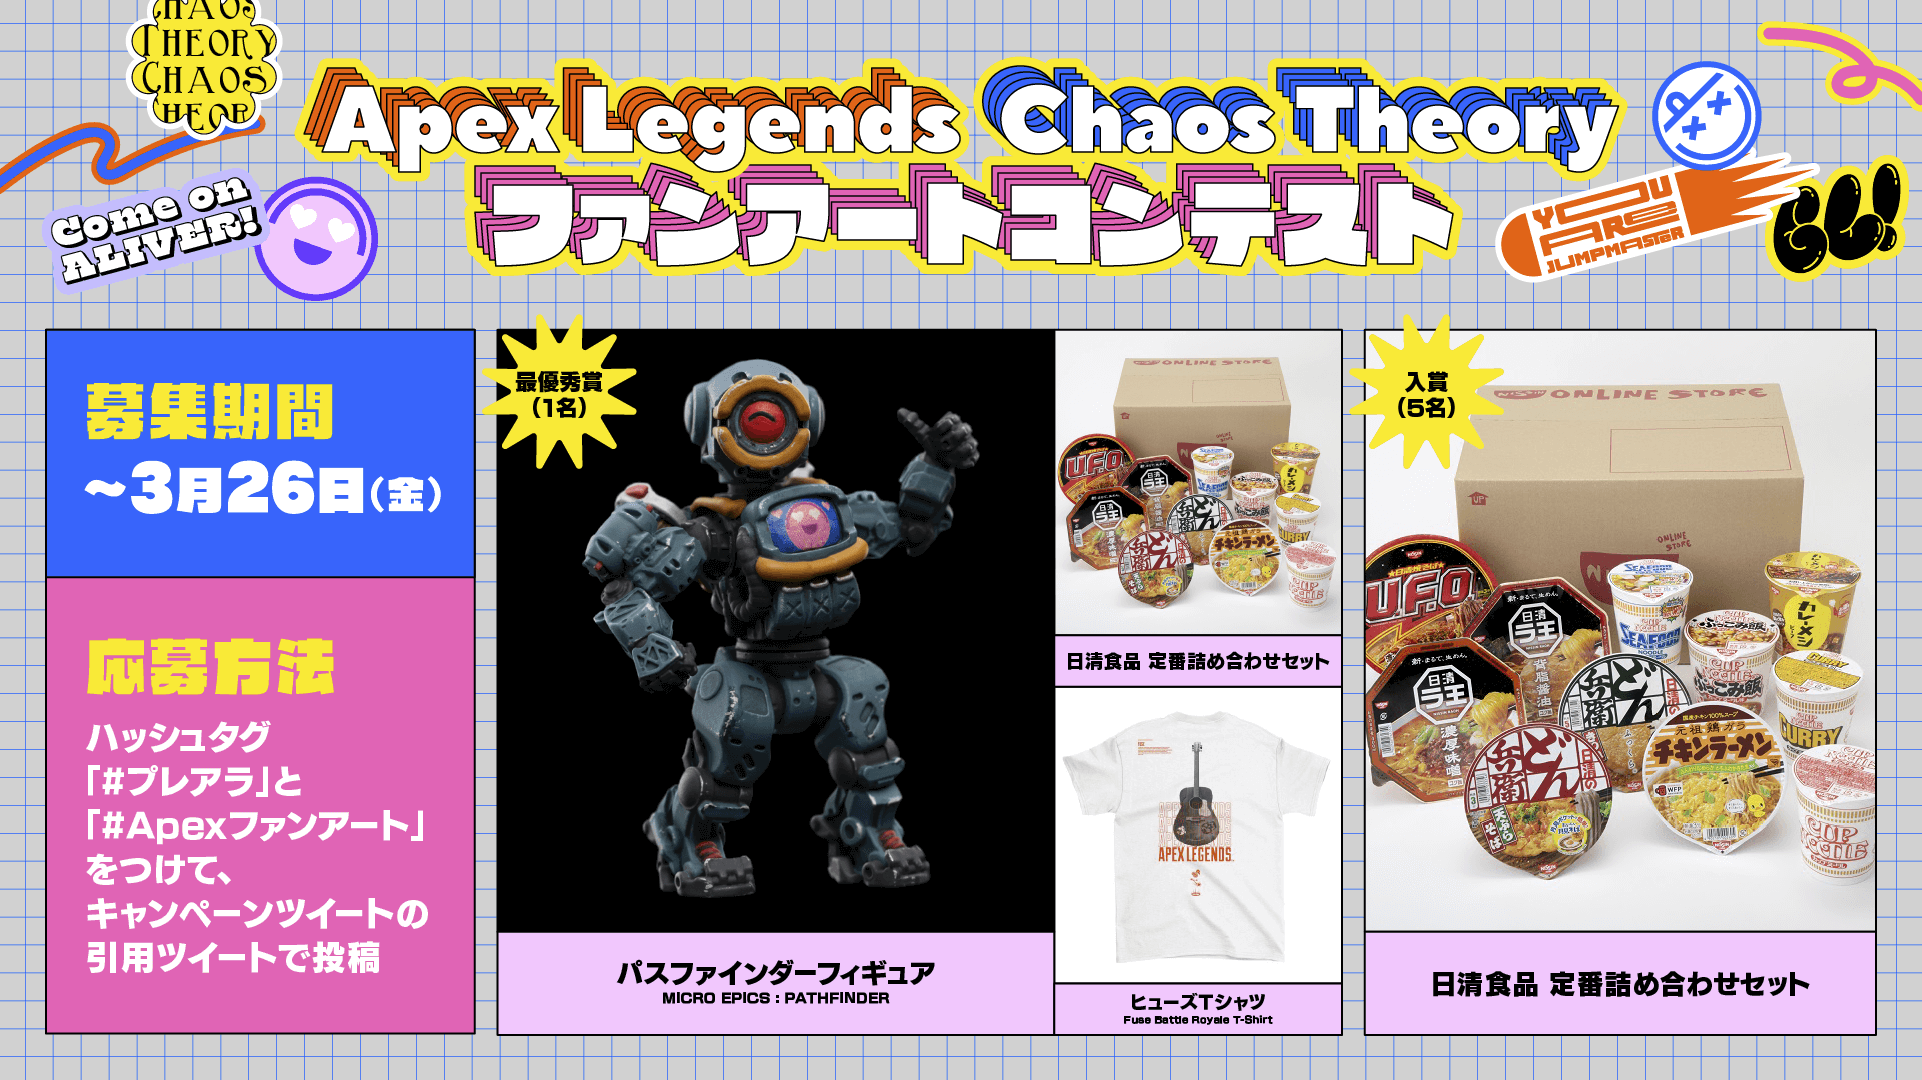 Apex Legends Chaos Theory ファンアートコンテスト